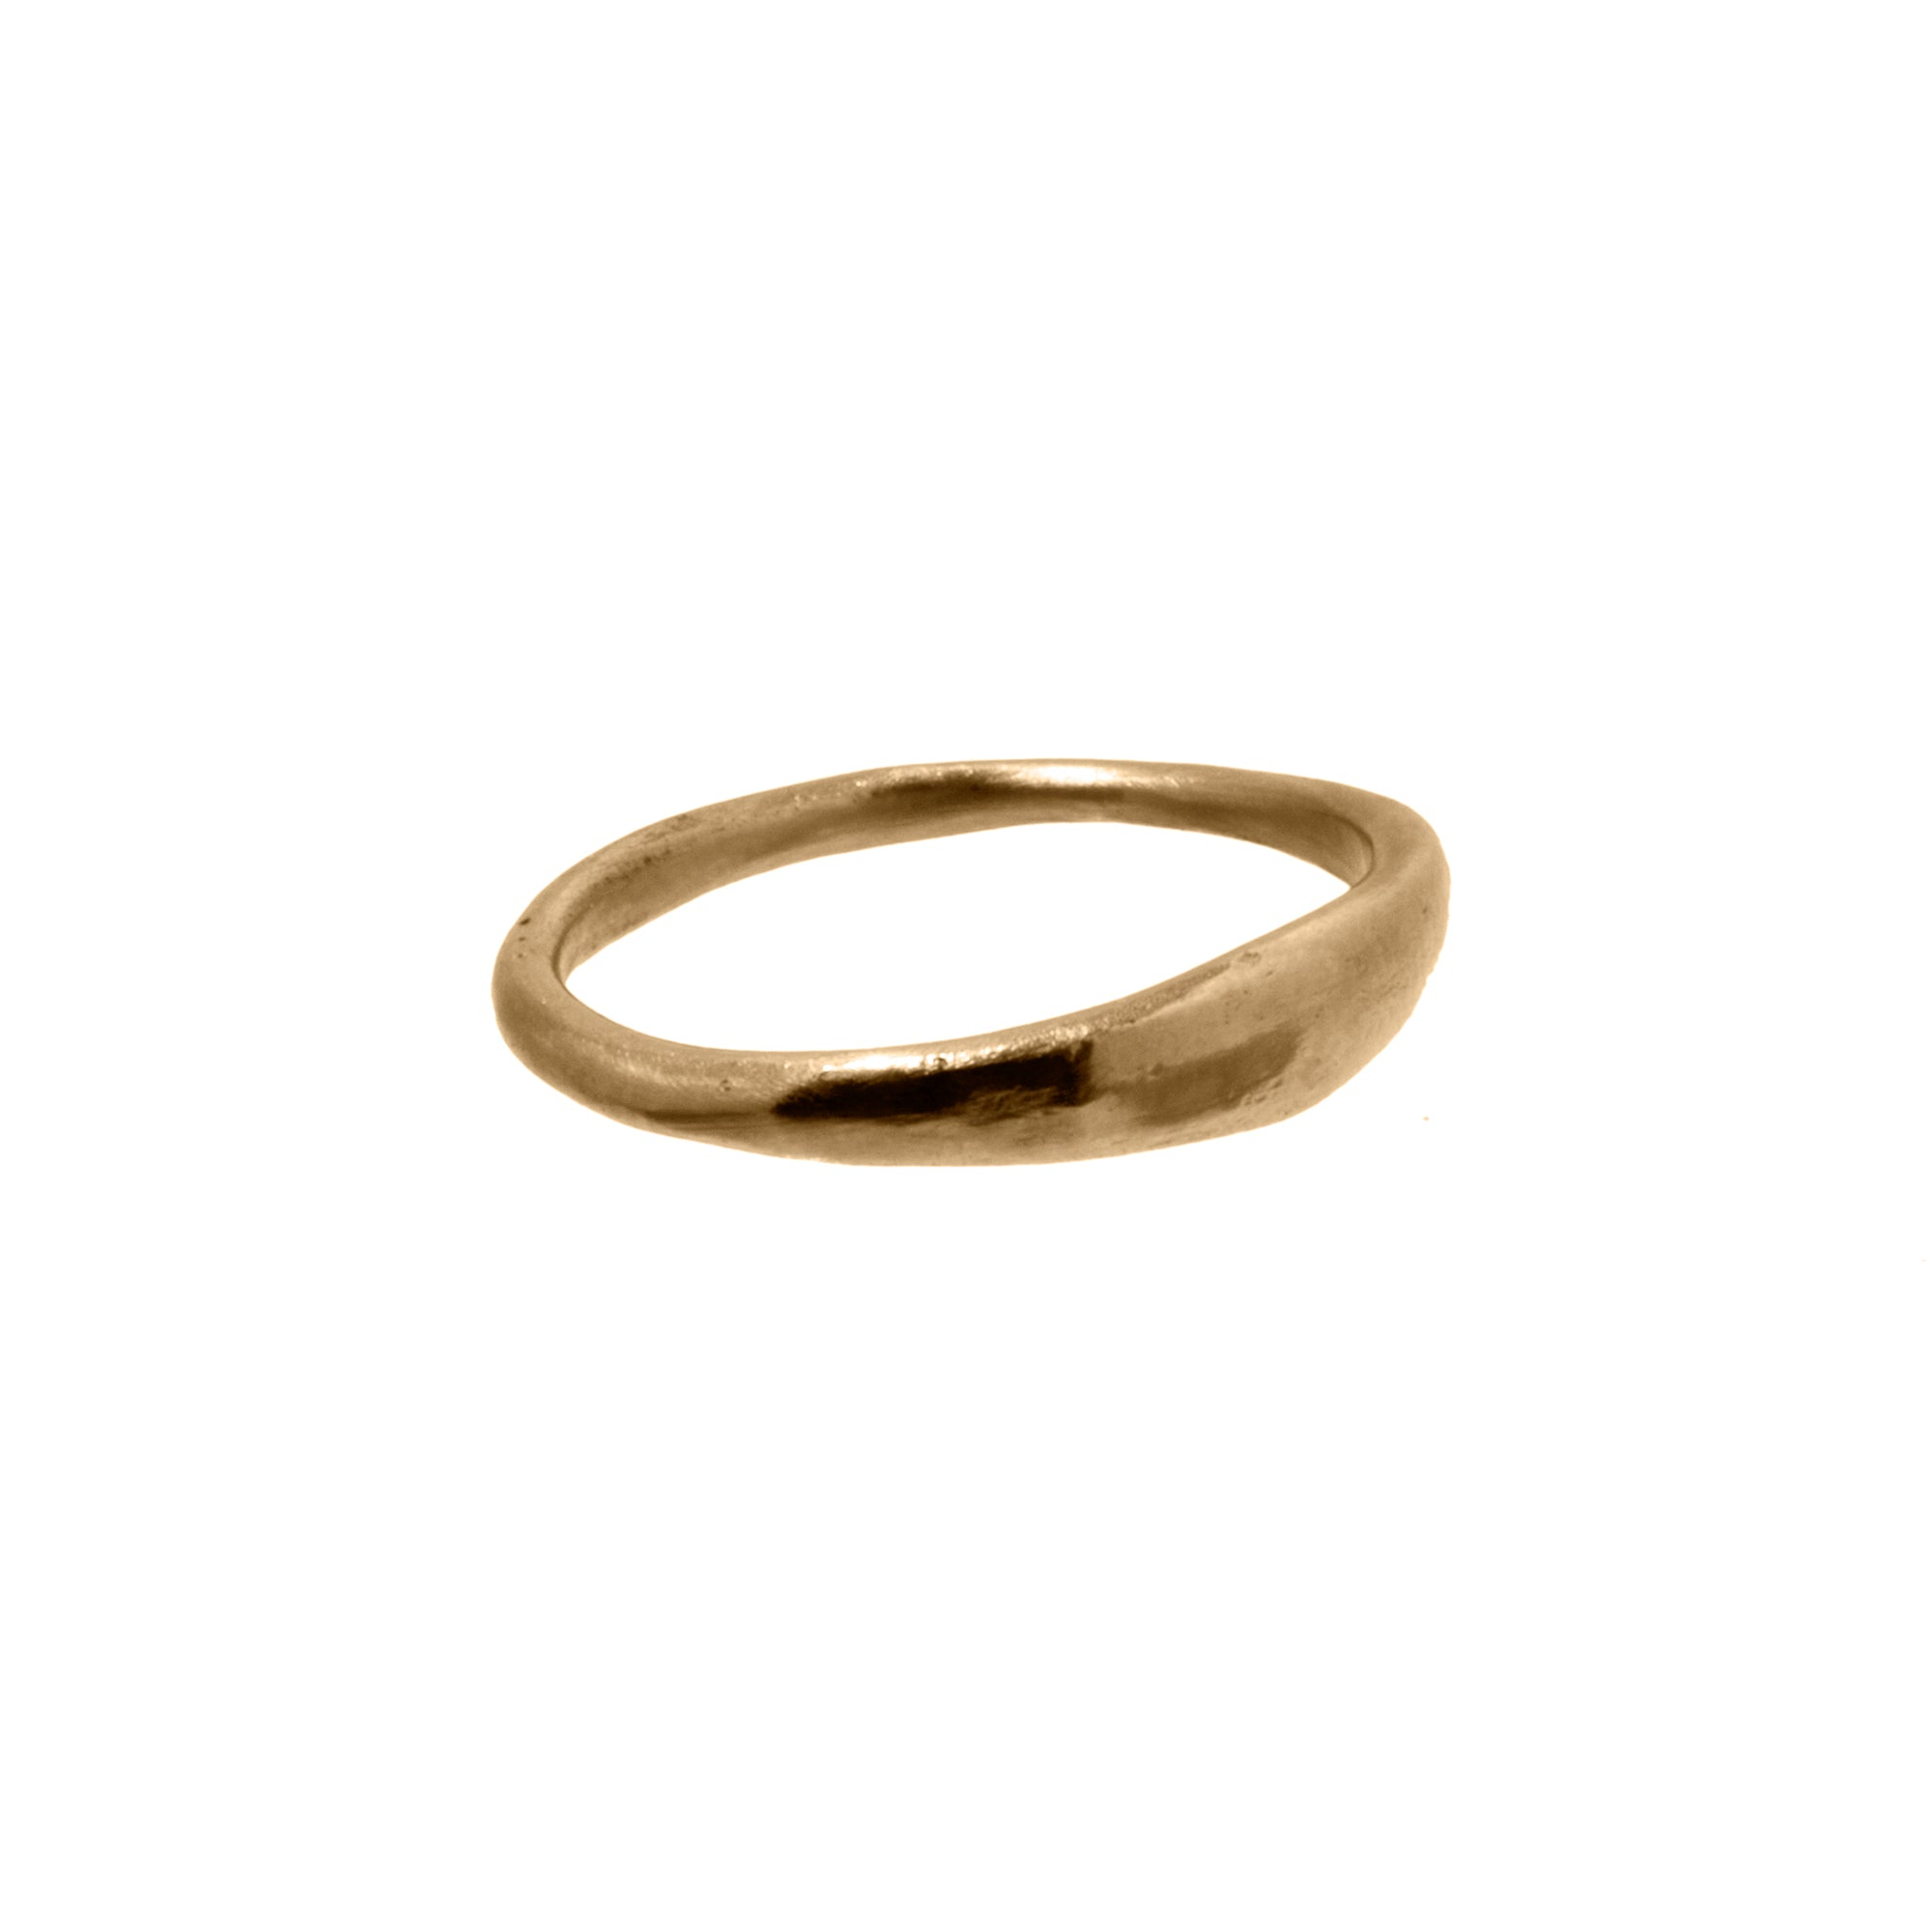 Small Gold Stacking Ring by James Colarusso for Broken English Jewelry